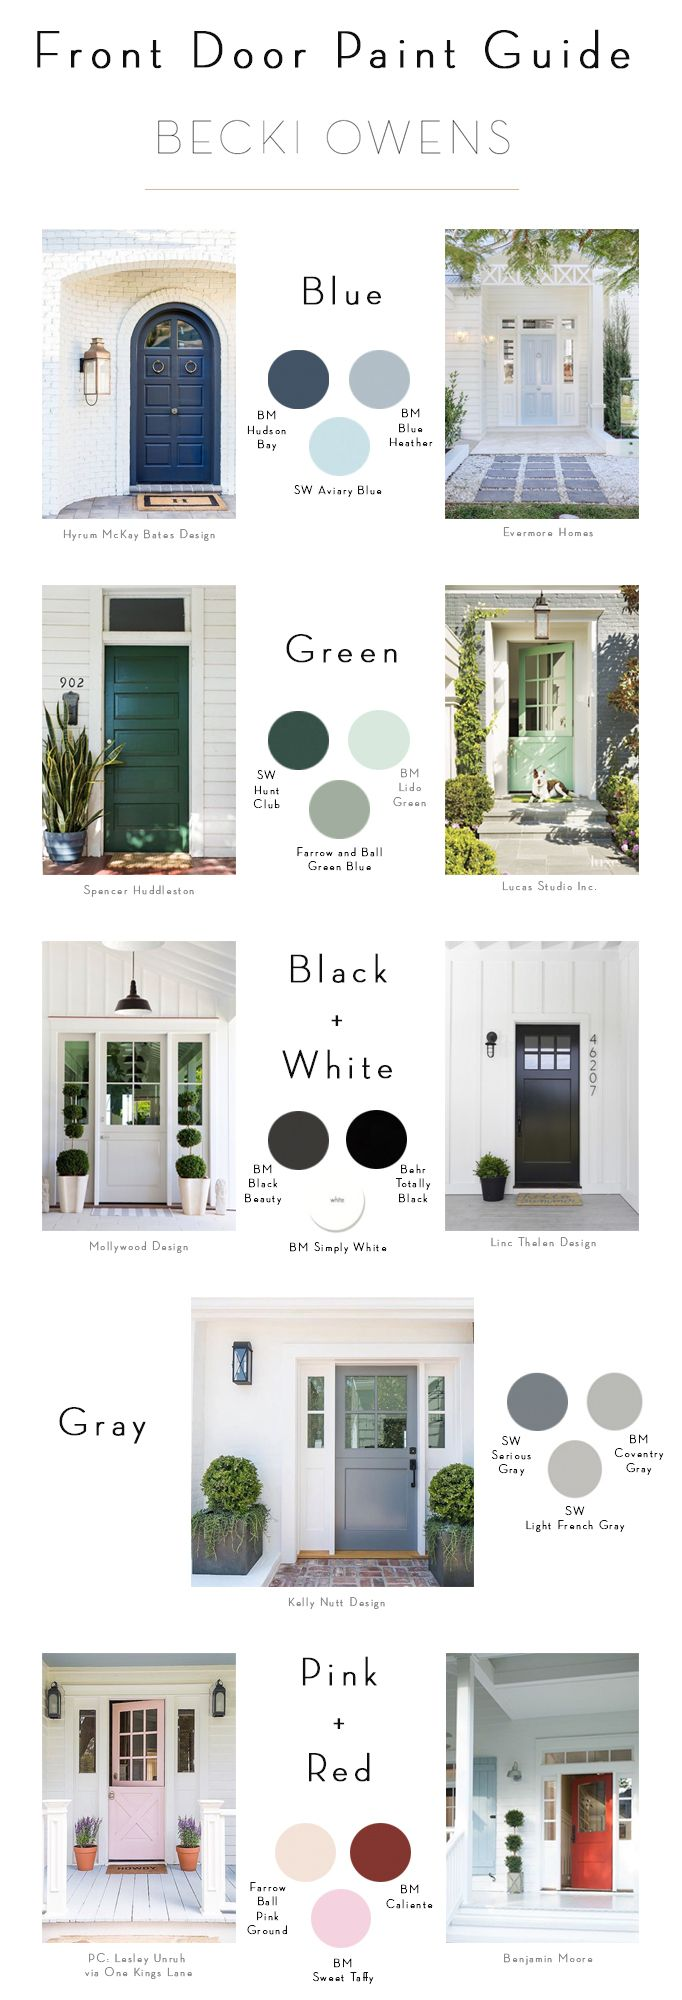 BECKI OWENS- Spring Curb Appeal: Painted Front Doors + Paint Guide